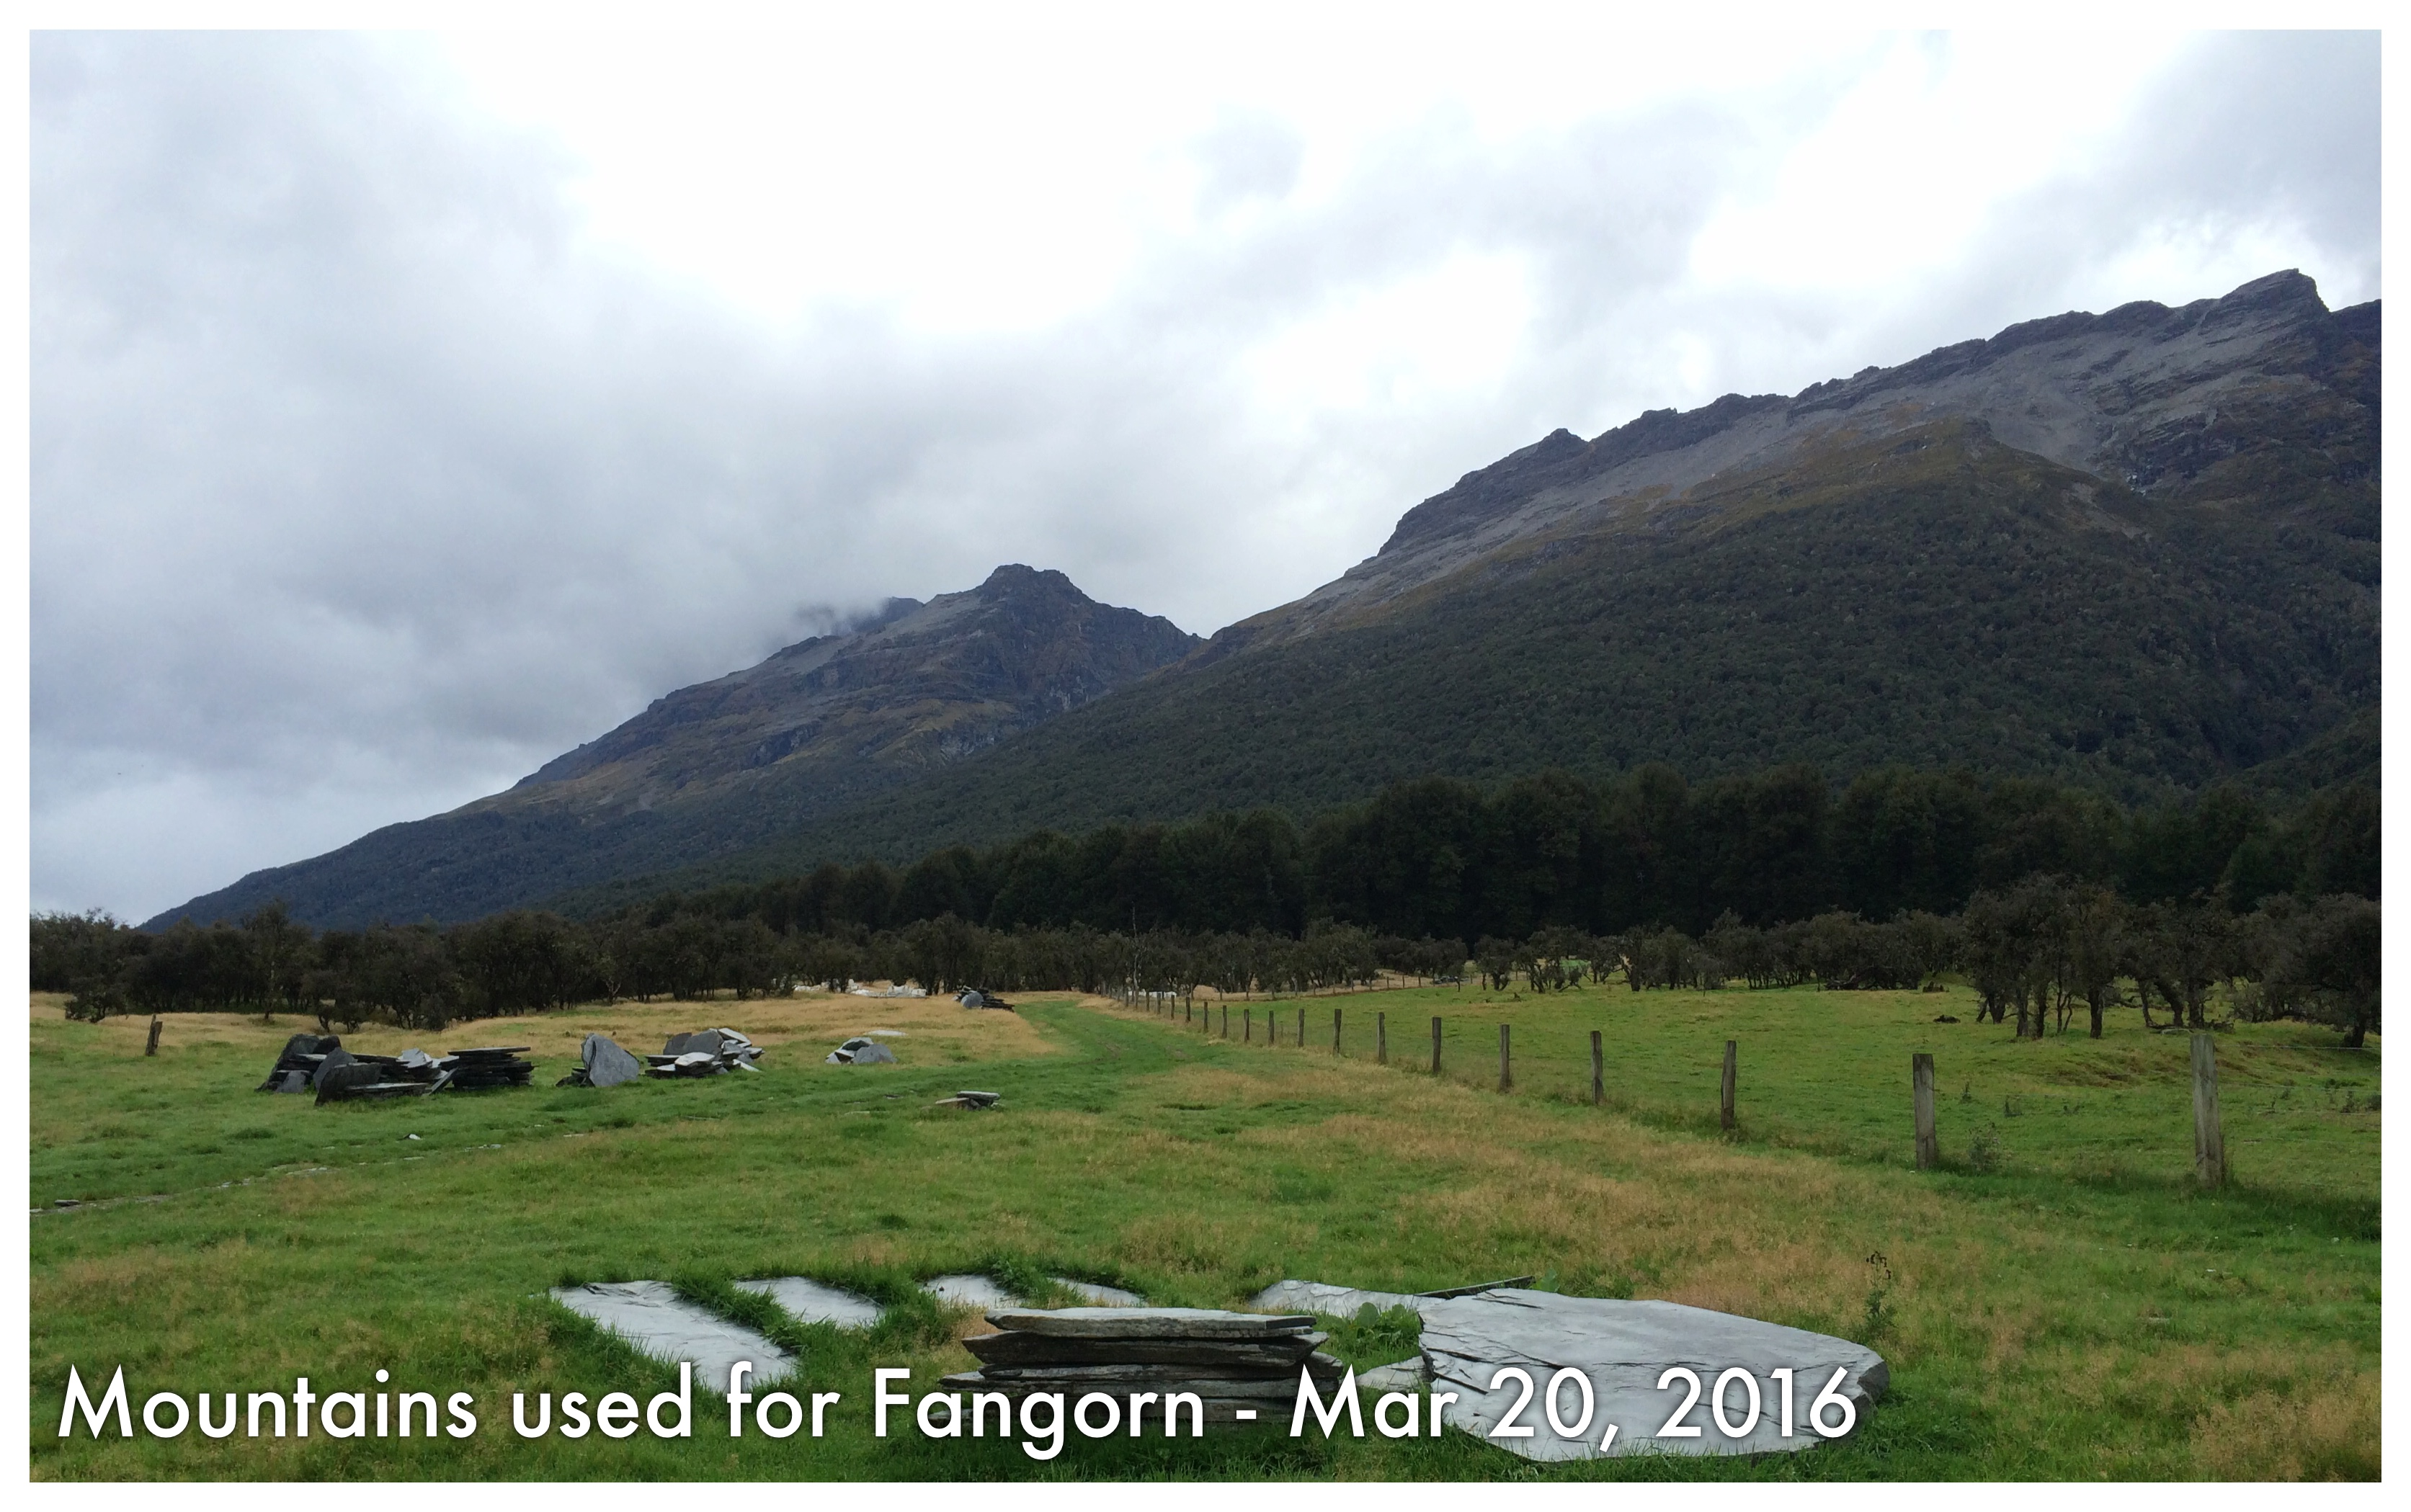 Fangorn mountains